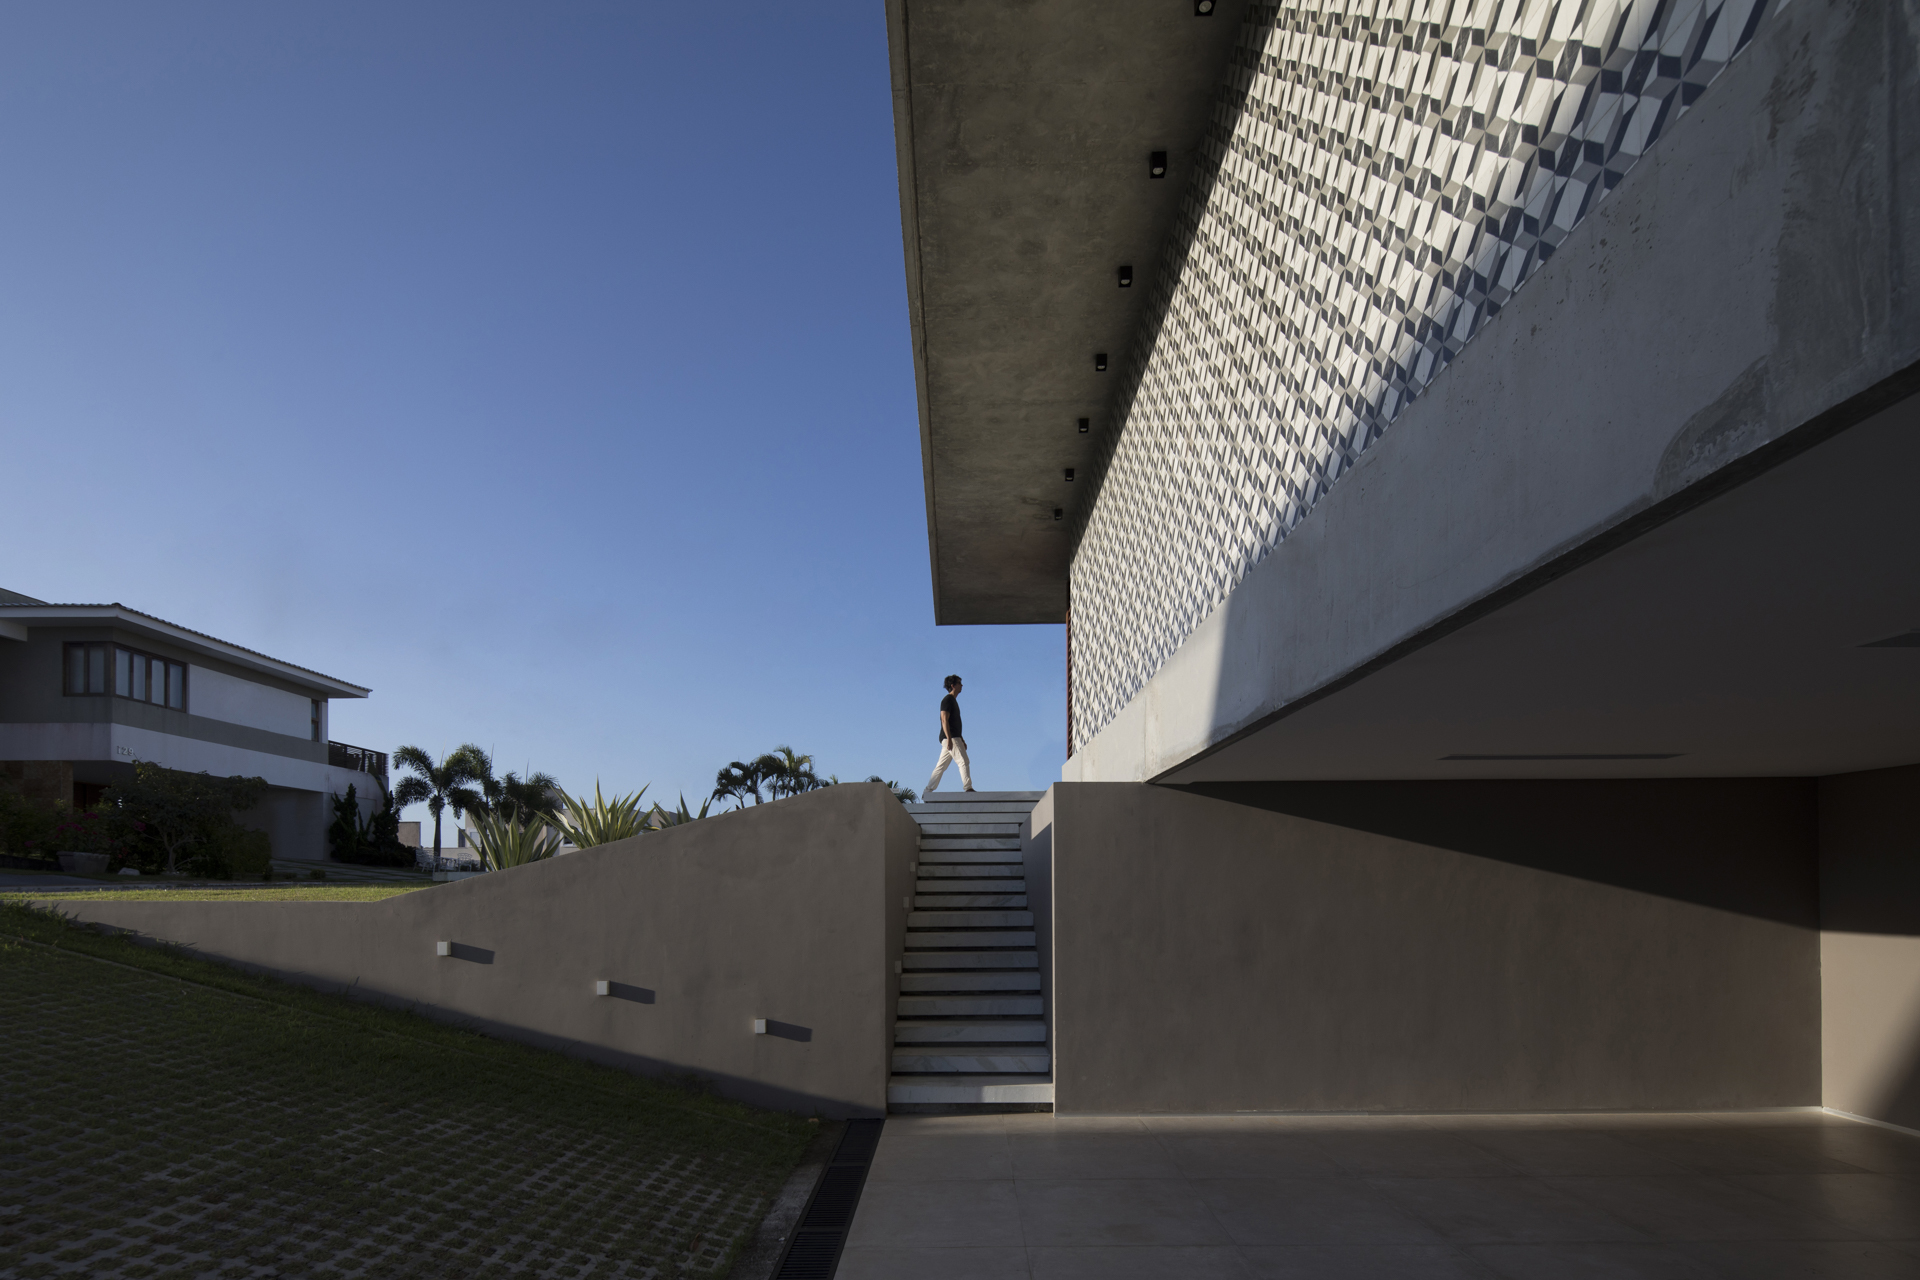 32_CASA_IF_-_Martins_Lucena_Arquitetos-10.jpg